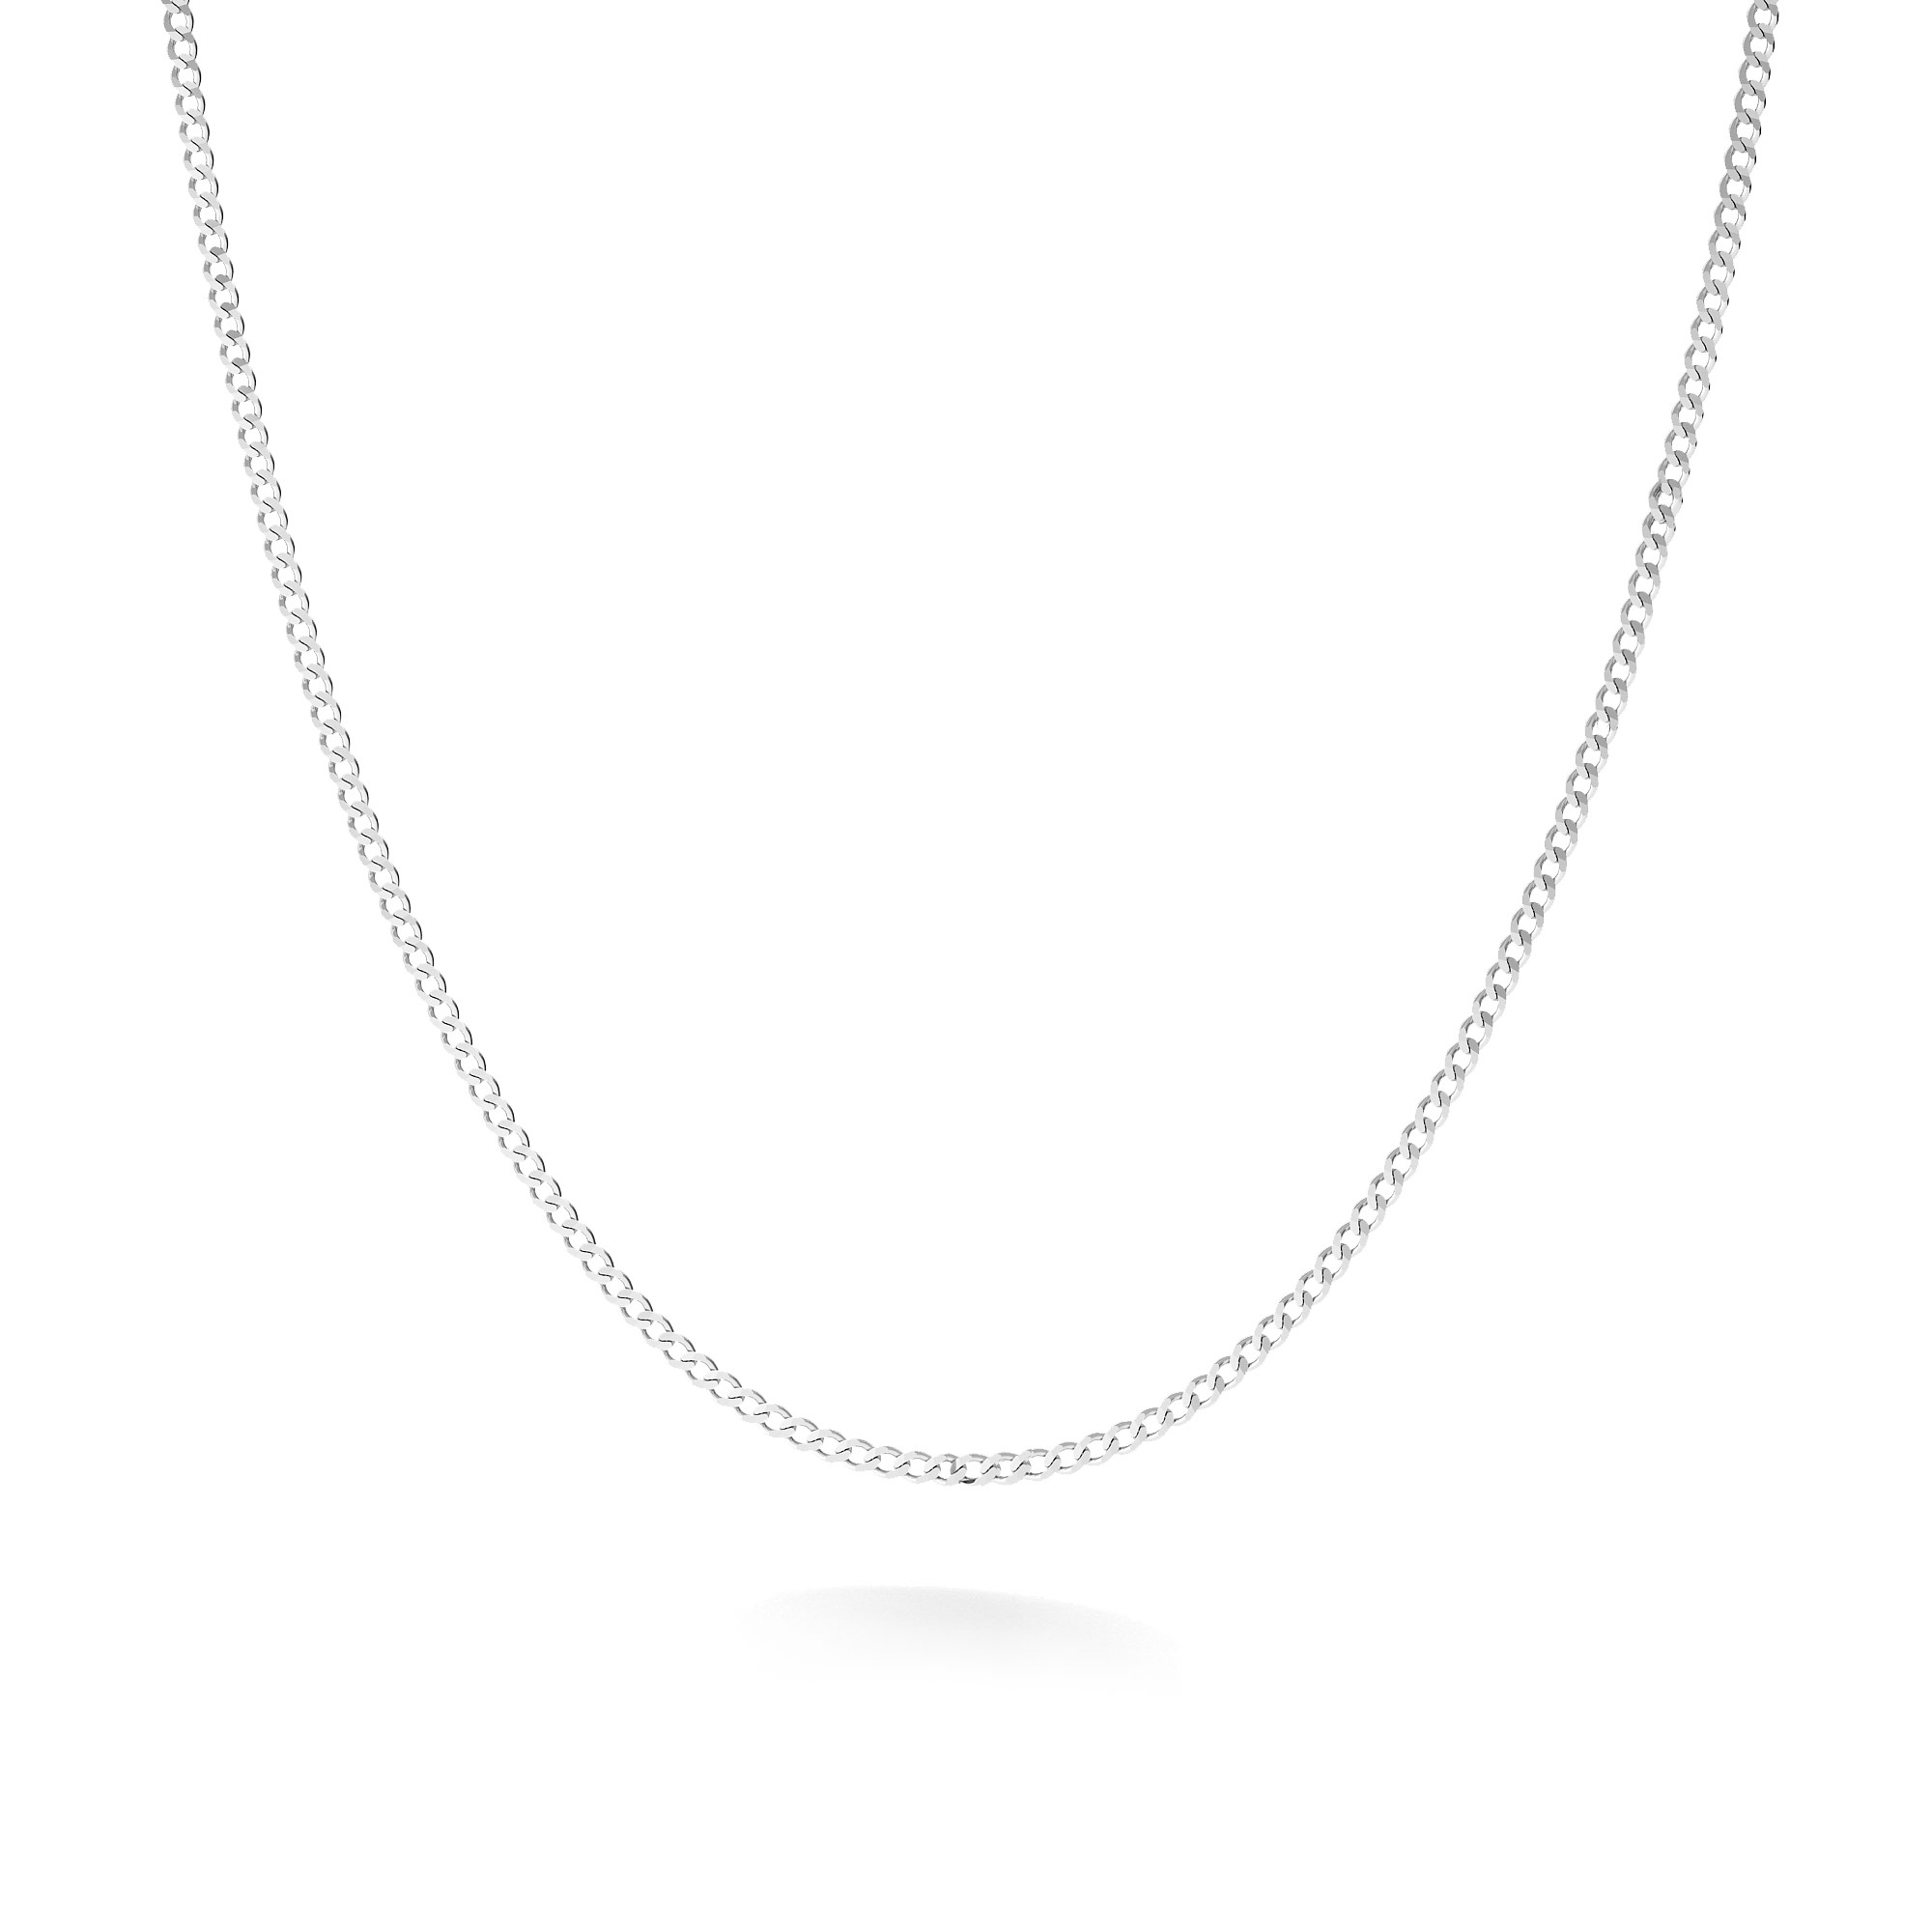 Curb chain sterling silver